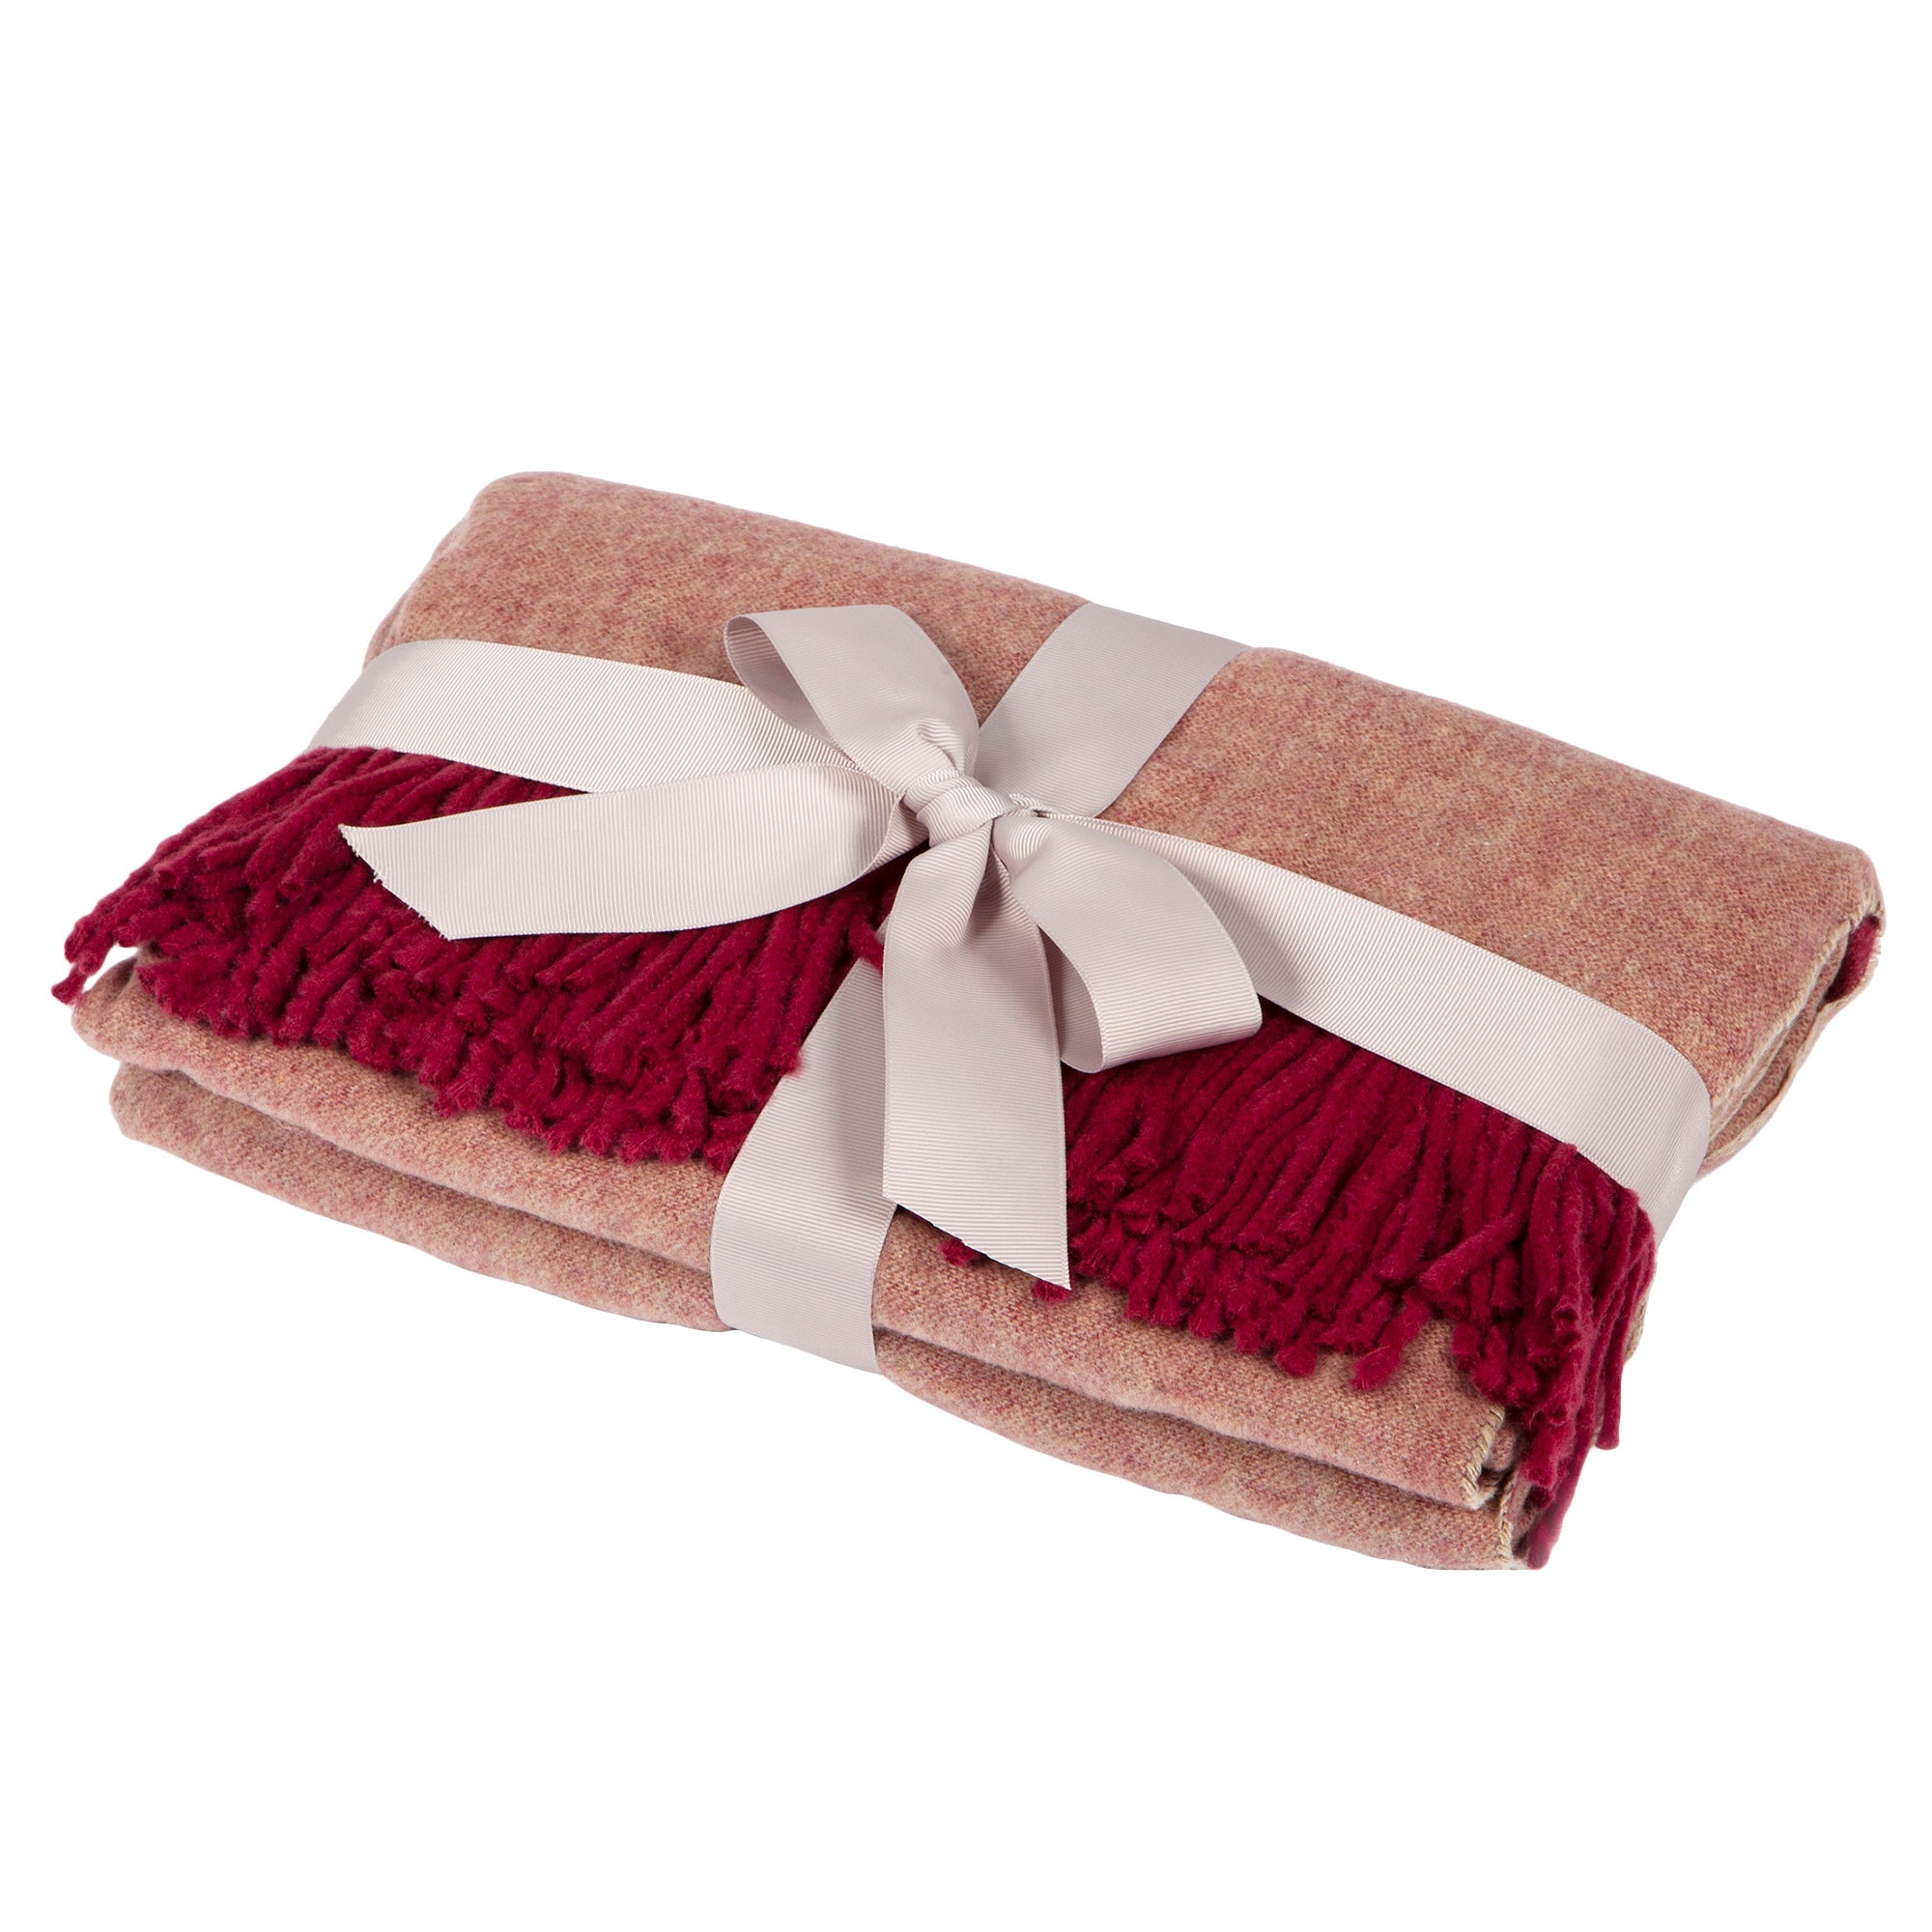 Photo of Plain woollen throw red